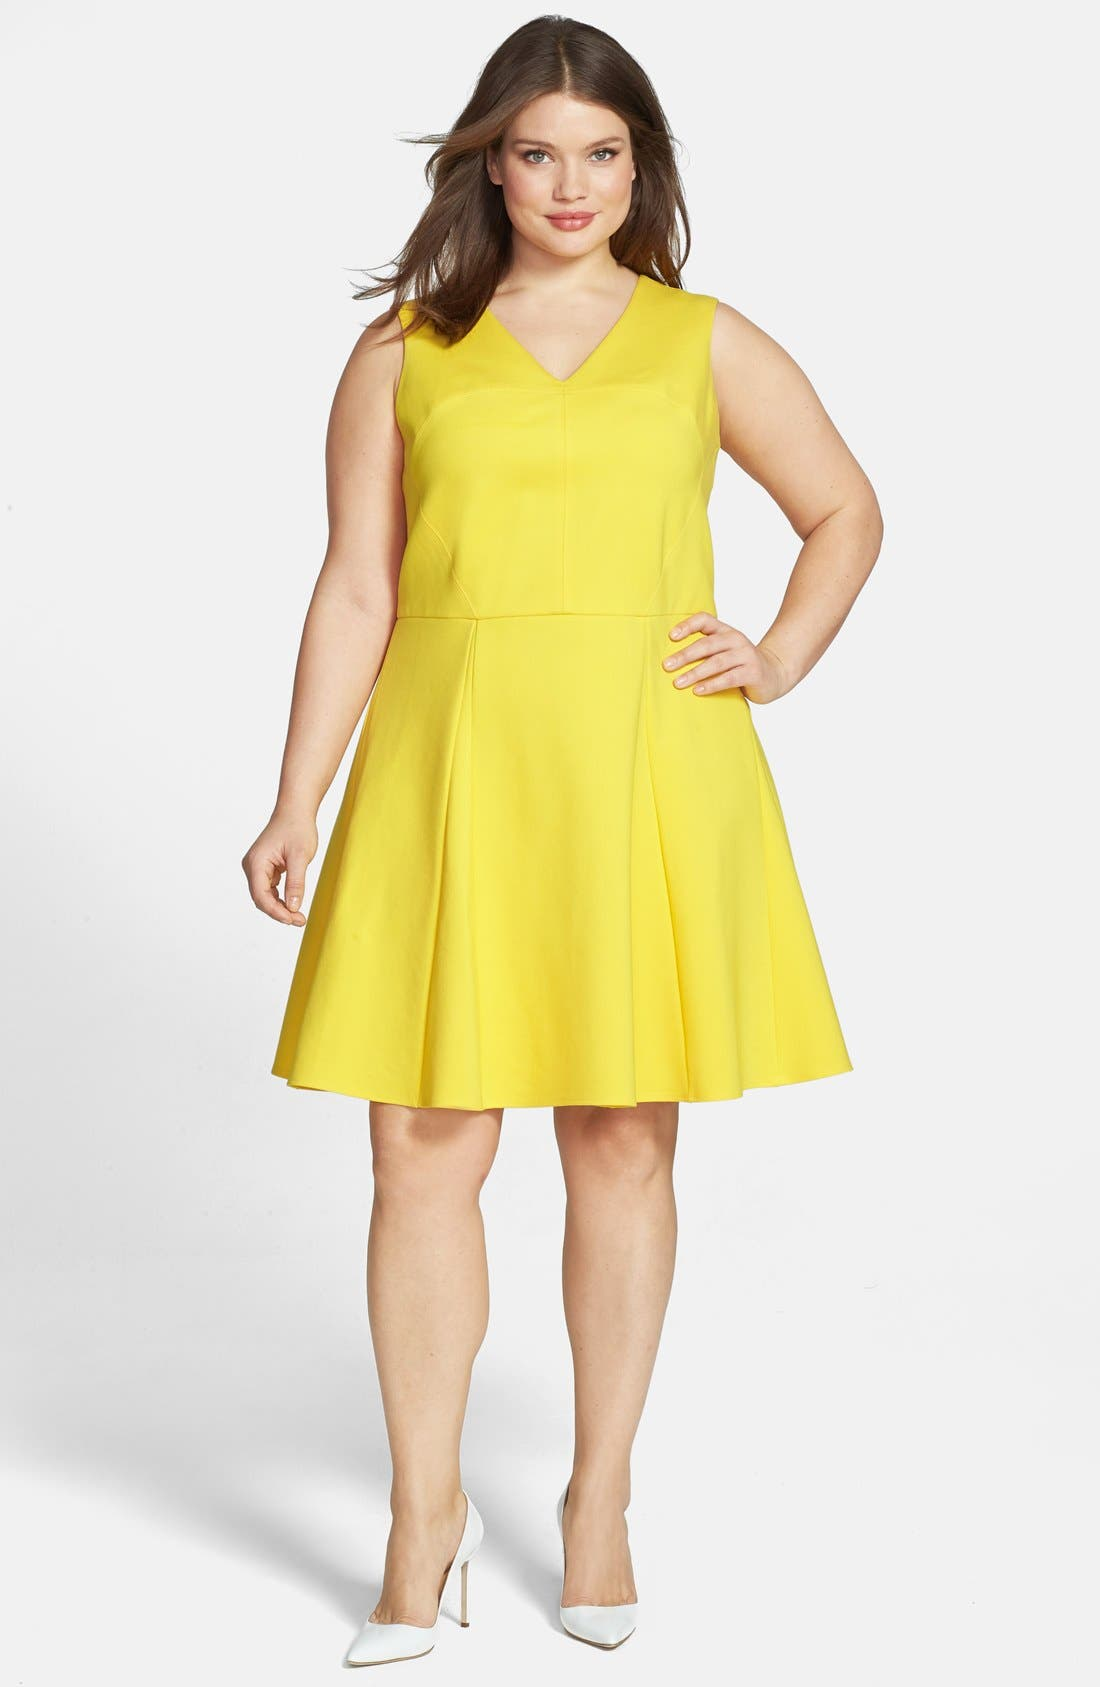 Alternate Image 1 Selected - ABS by Allen Schwartz Sleeveless Fit & Flare Dress (Plus Size)